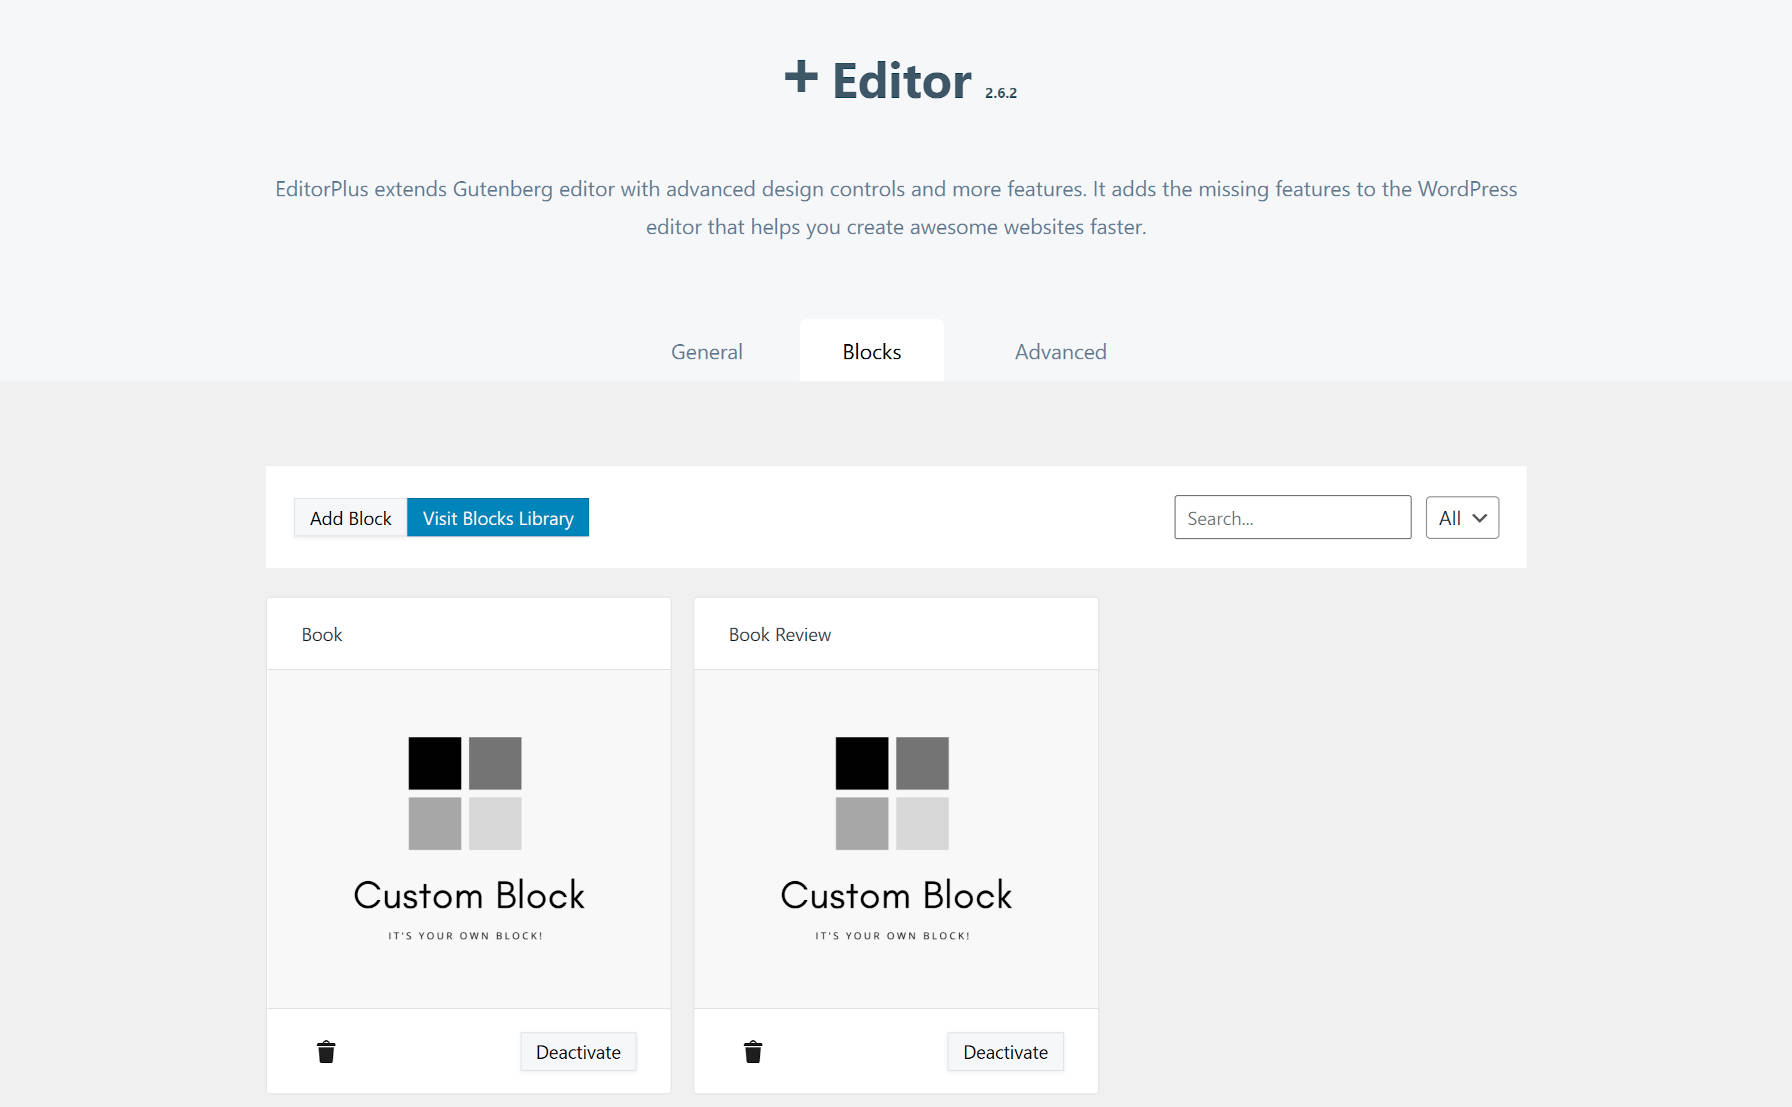 Editor Plus custom block feature in version 2.6.2.